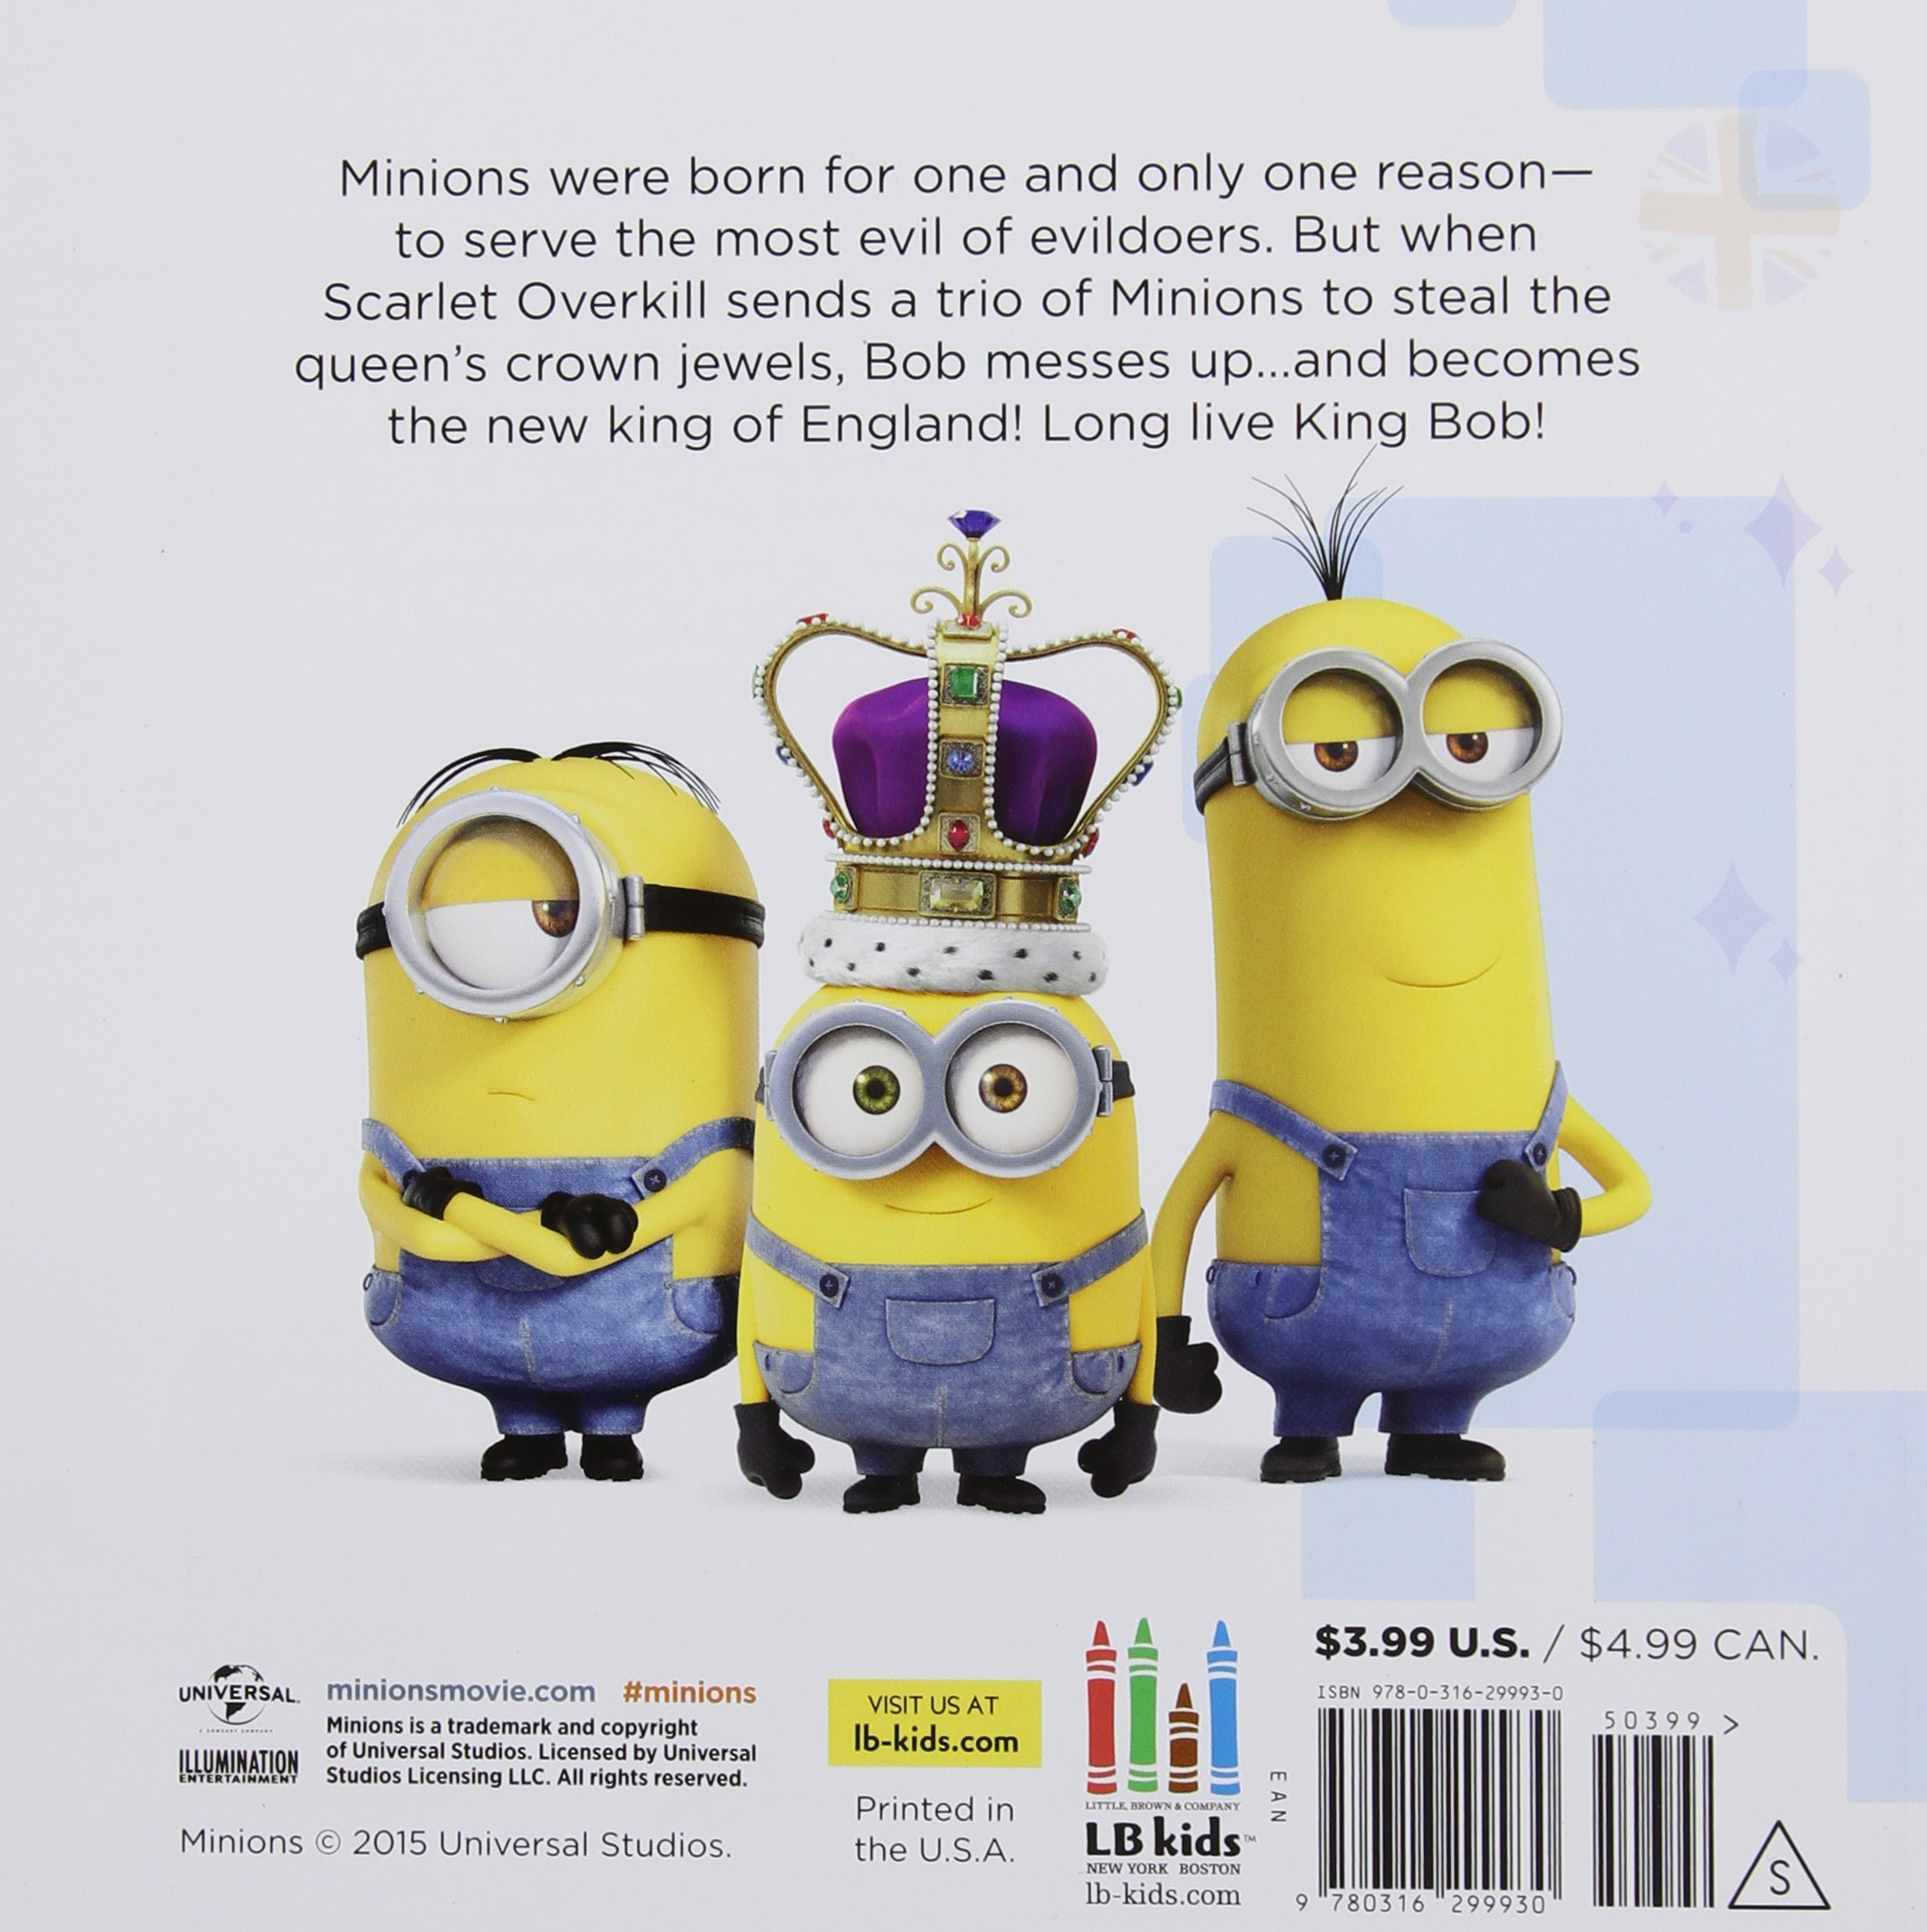 Minions Long Live King Bob Lucy Rosen 9780316299930 Amazon Books